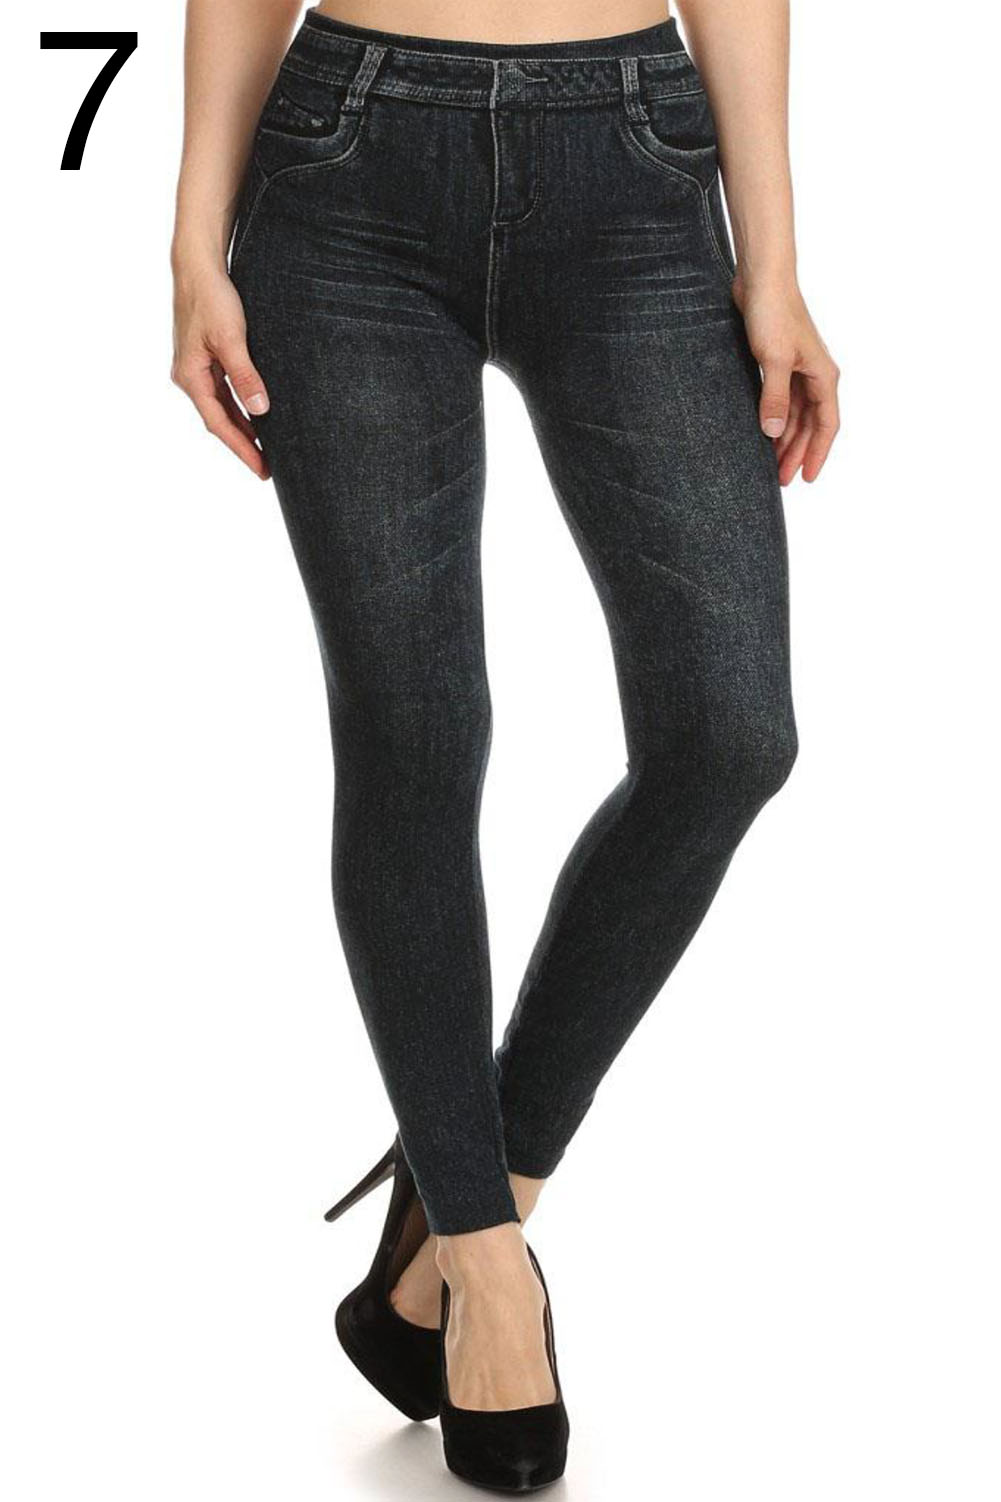 Shop the Latest Plus Size Jeans & Designer Denim Online at ingmecanica.ml FREE SHIPPING AVAILABLE! Macy's Presents: The Edit - A curated mix of fashion and inspiration Check It Out Free Shipping with $75 purchase + Free Store Pickup.